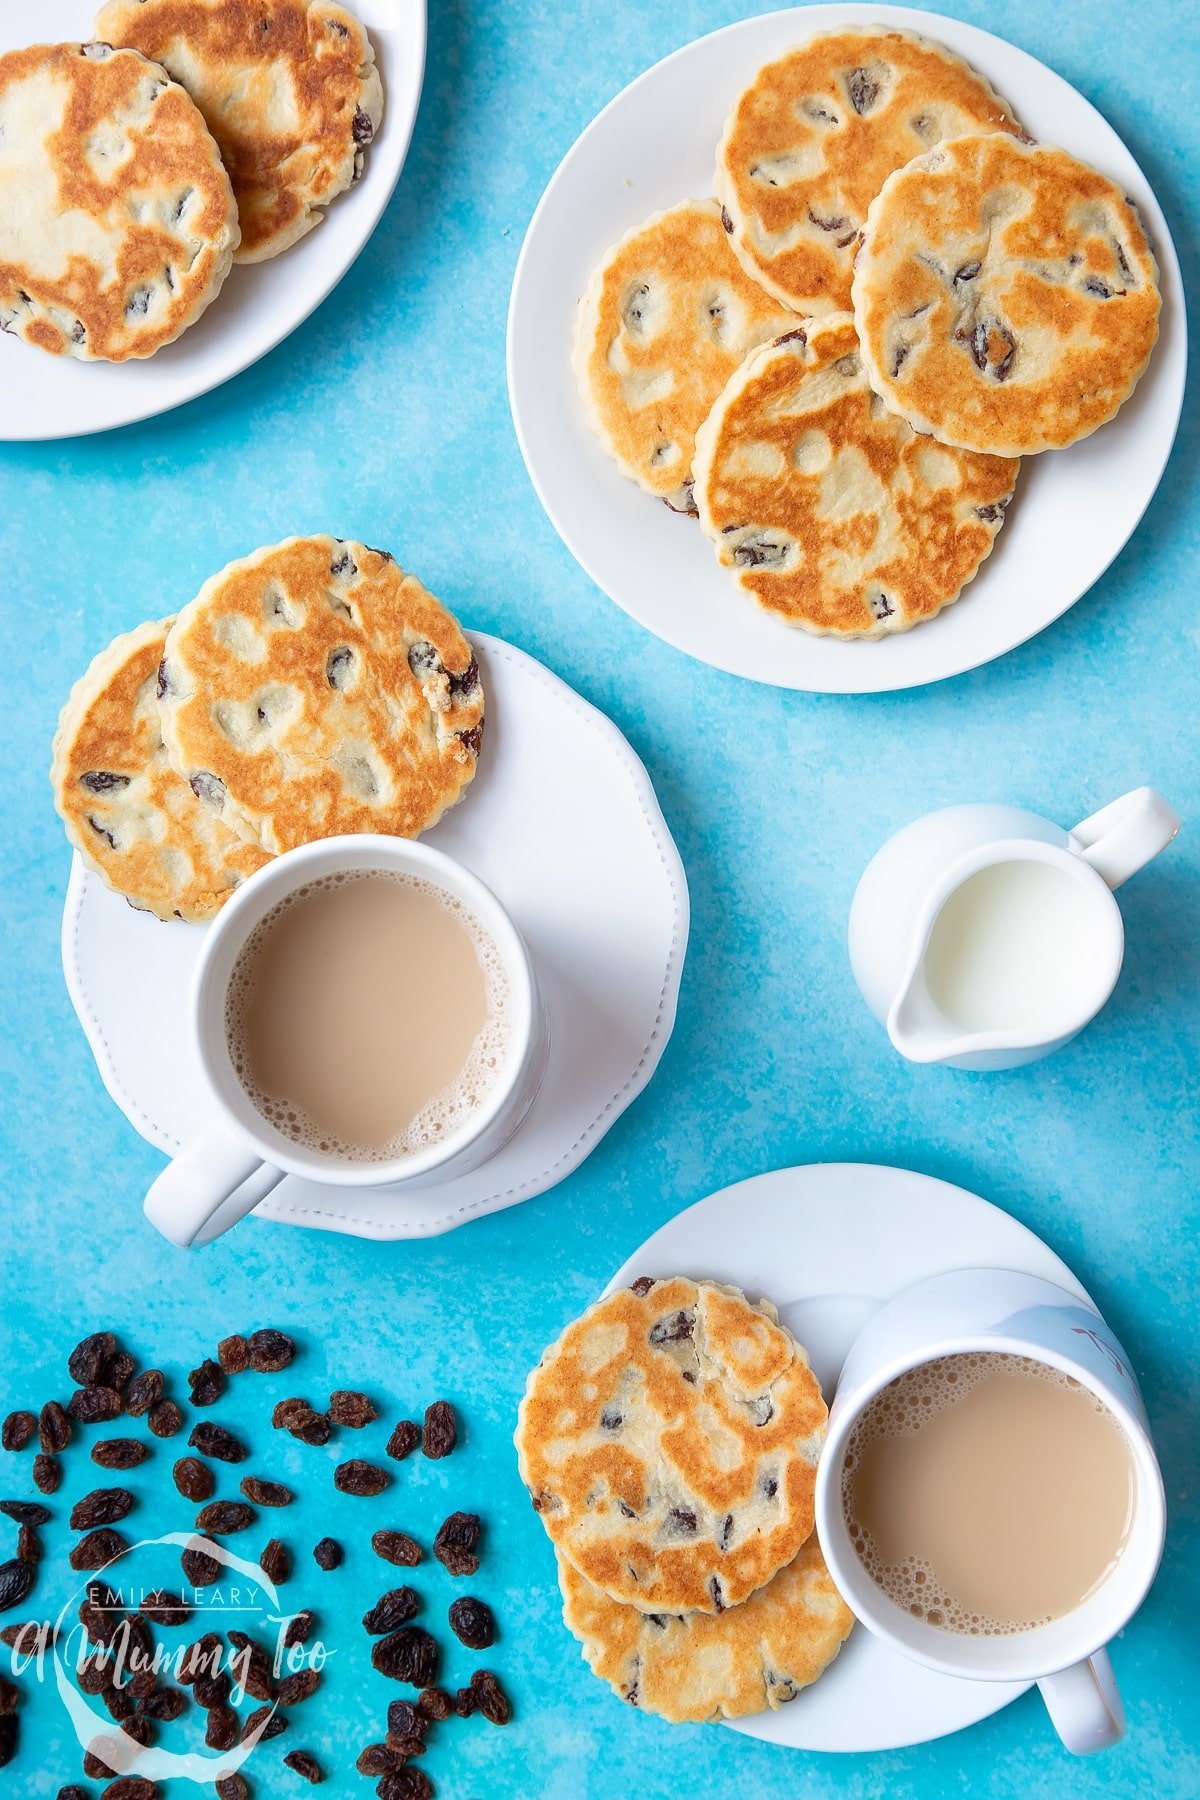 Welsh cakes on a number of white plates with cups of tea. A small jug of milk sits to one side by a scattering of sultanas.